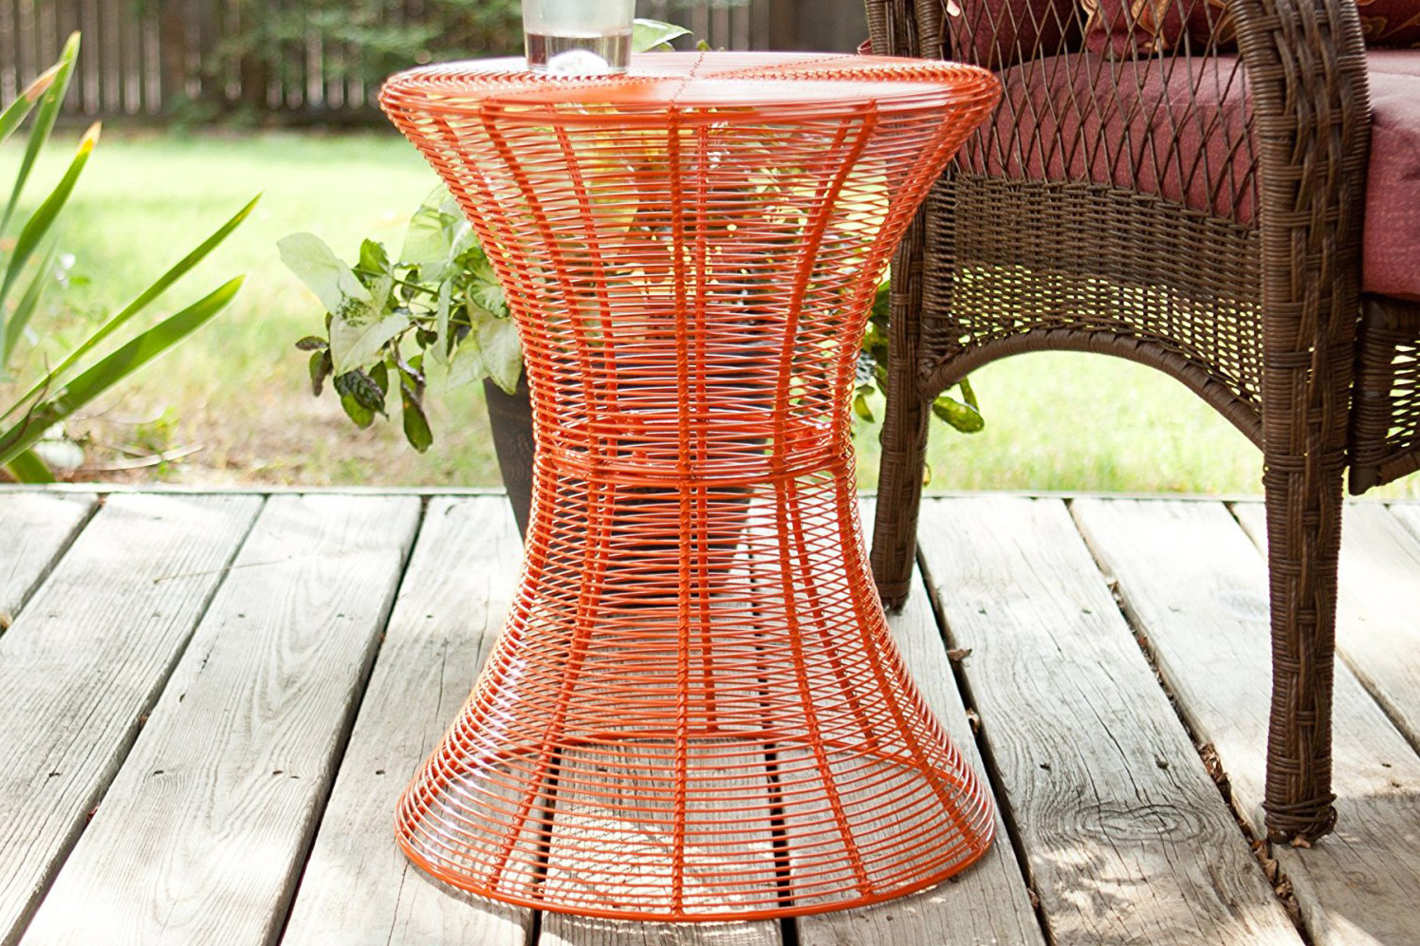 best end tables homebeez orange accent side round sei metal table small marble bunnings cane chairs glass top wine rack cloth adjustable furniture legs sitting room wood block